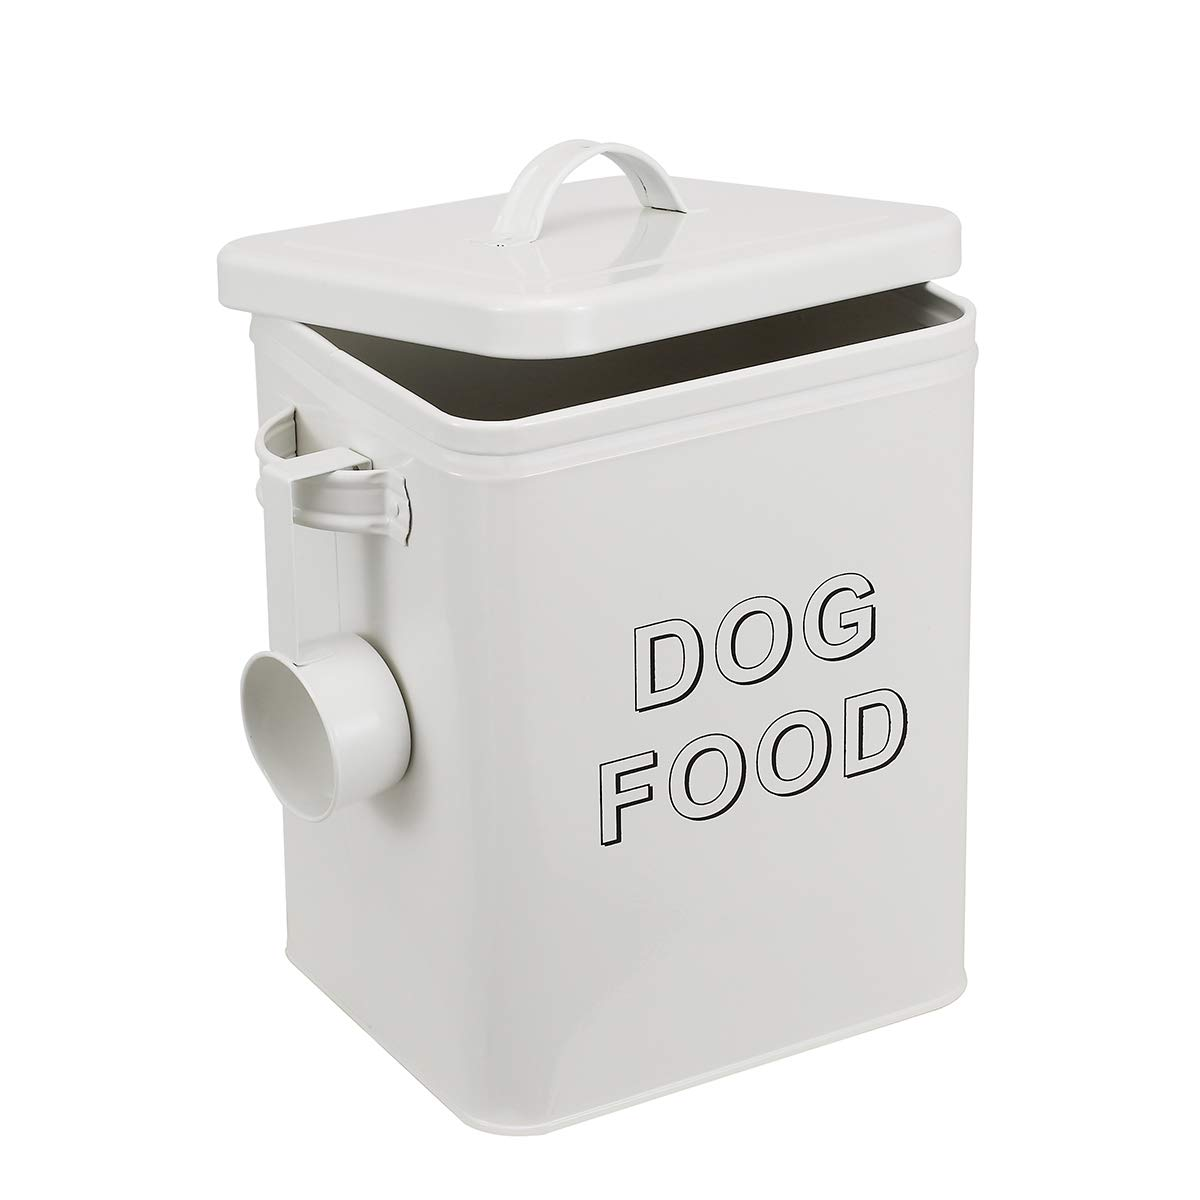 Morezi Dog Treat and Food Storage Tin with Lid and Serving Scoop Included - Cream Powder - Coated Carbon Steel - Tight Fitting Lids - Storage Canister Tins - Dog Food by Morezi